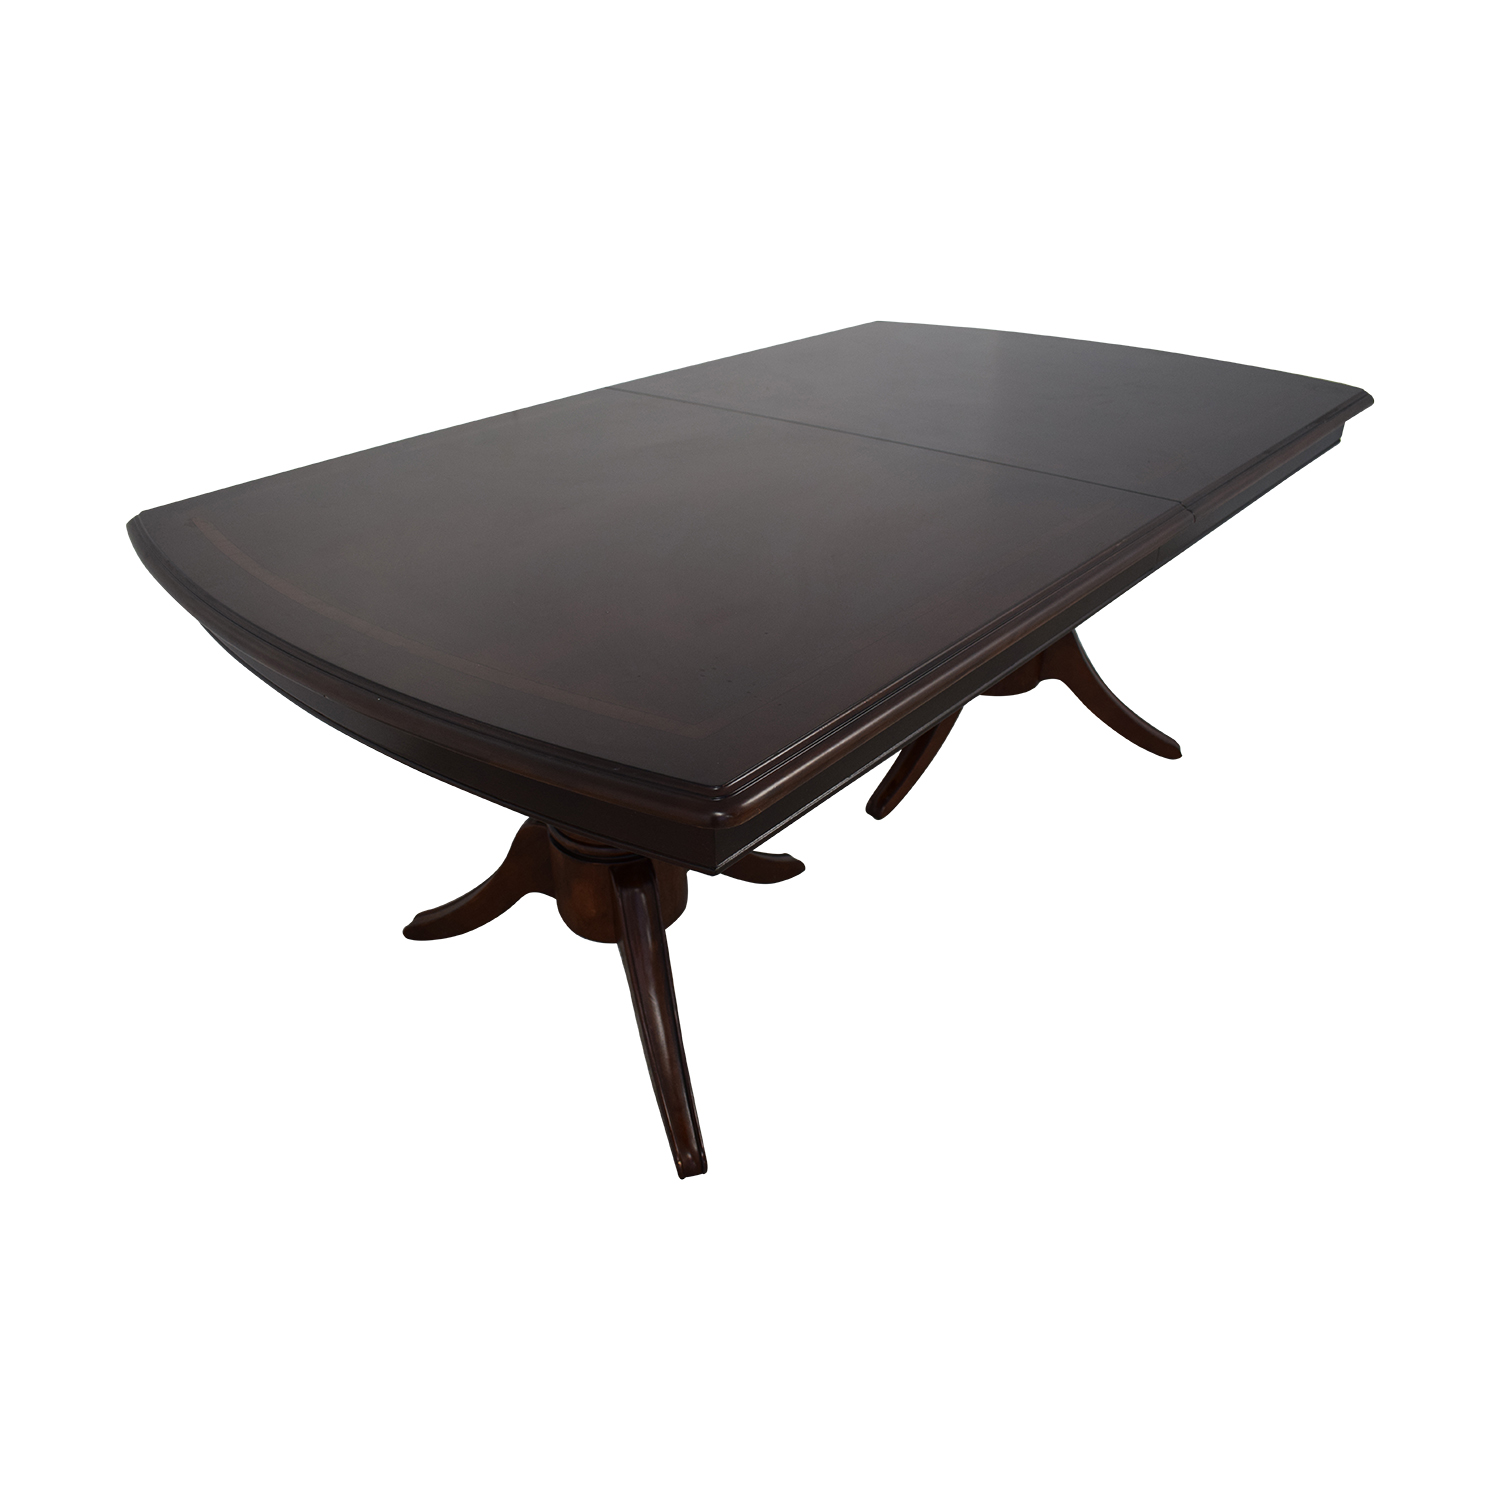 Raymour & Flanigan Raymour & Flanigan Dining Table Dinner Tables